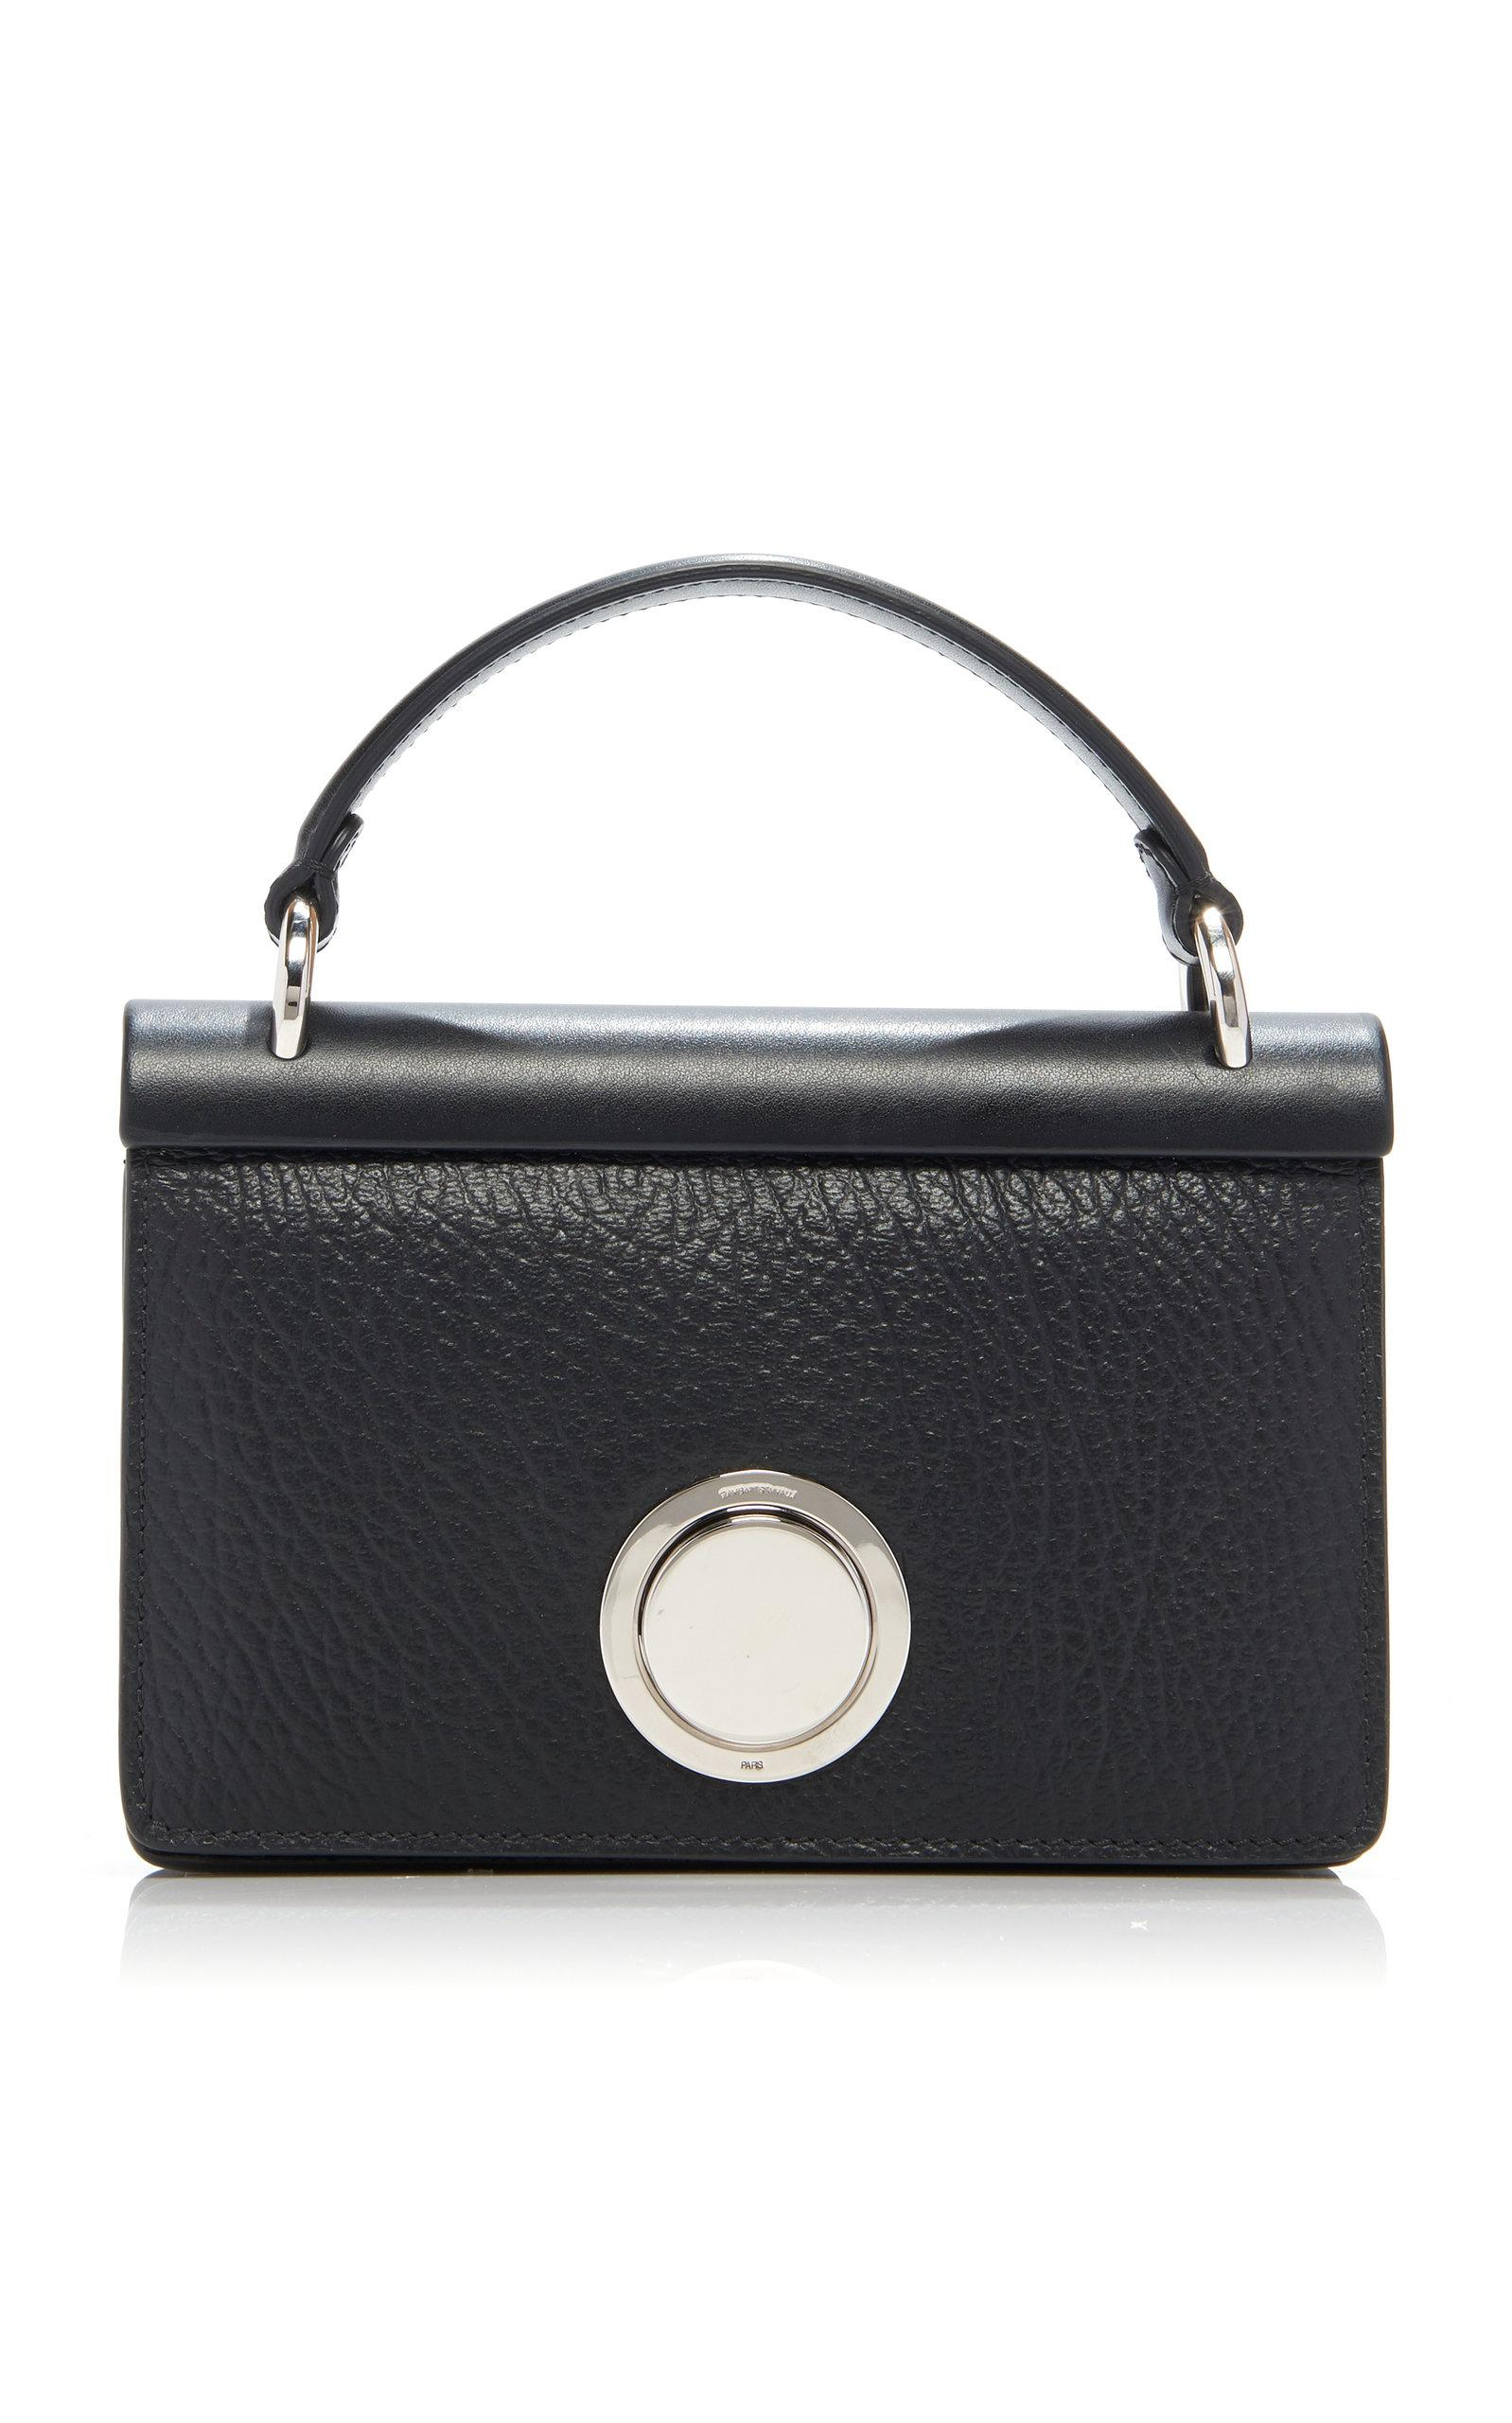 7e04c81e21f Giambattista Valli Valli Mini Leather Bag in Black - Lyst